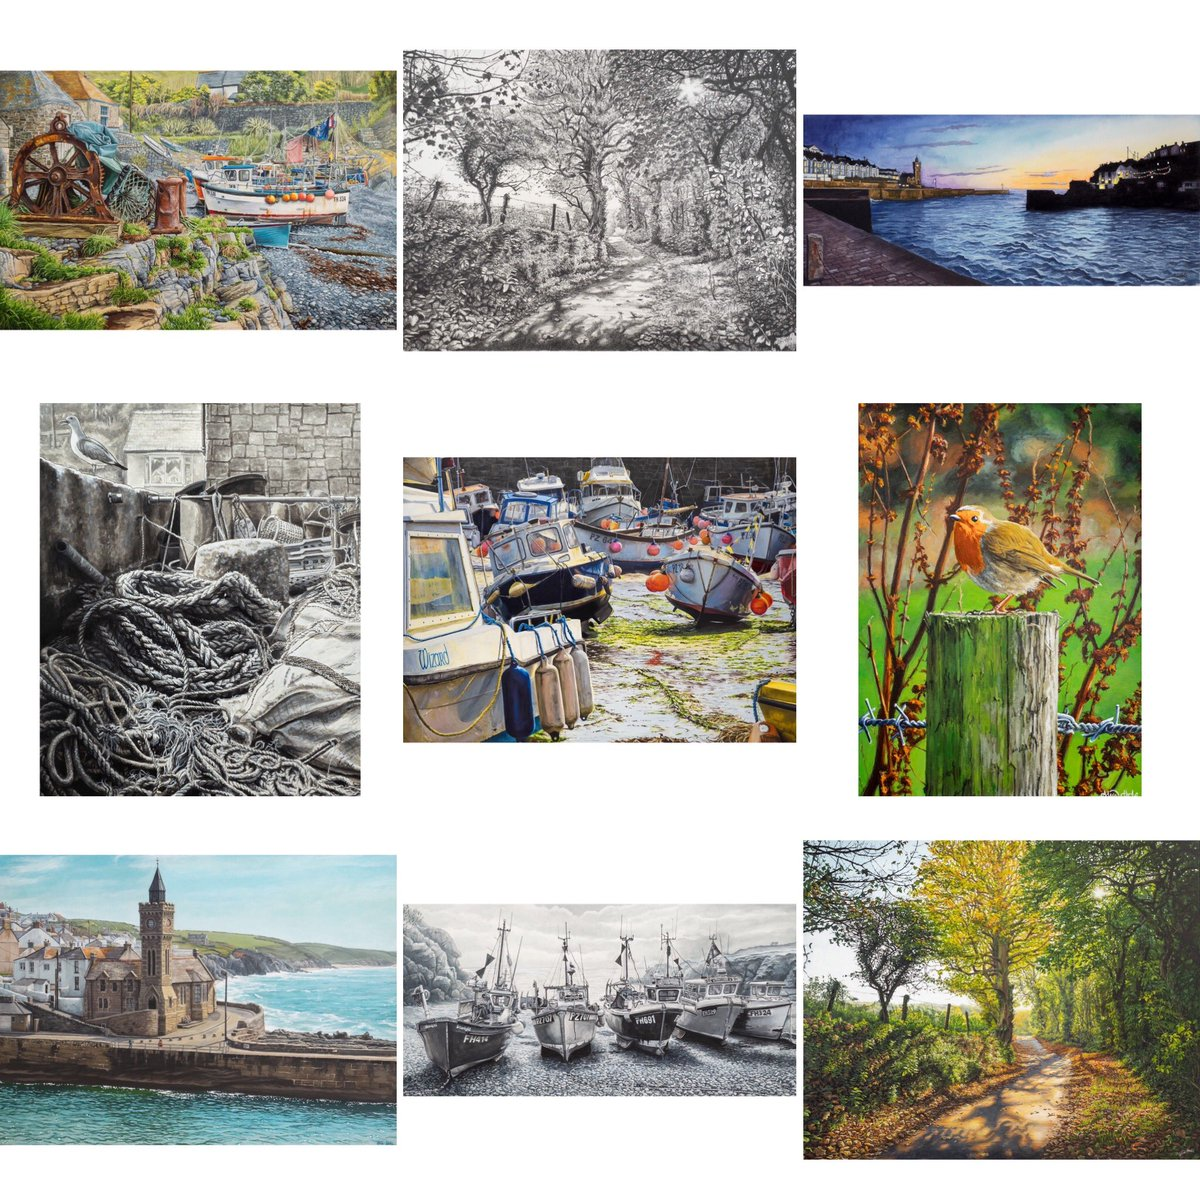 My favourite 2019 paintings and drawings    #landscapepainting #landscapedrawing #cornishlandscapeart #cornishart #cornishartist #alicehole #aliceholeartist #bestnine2019 #bestnine  #2019artistwrapped  #art2019 #2019art #art <br>http://pic.twitter.com/OvTsM2K49h